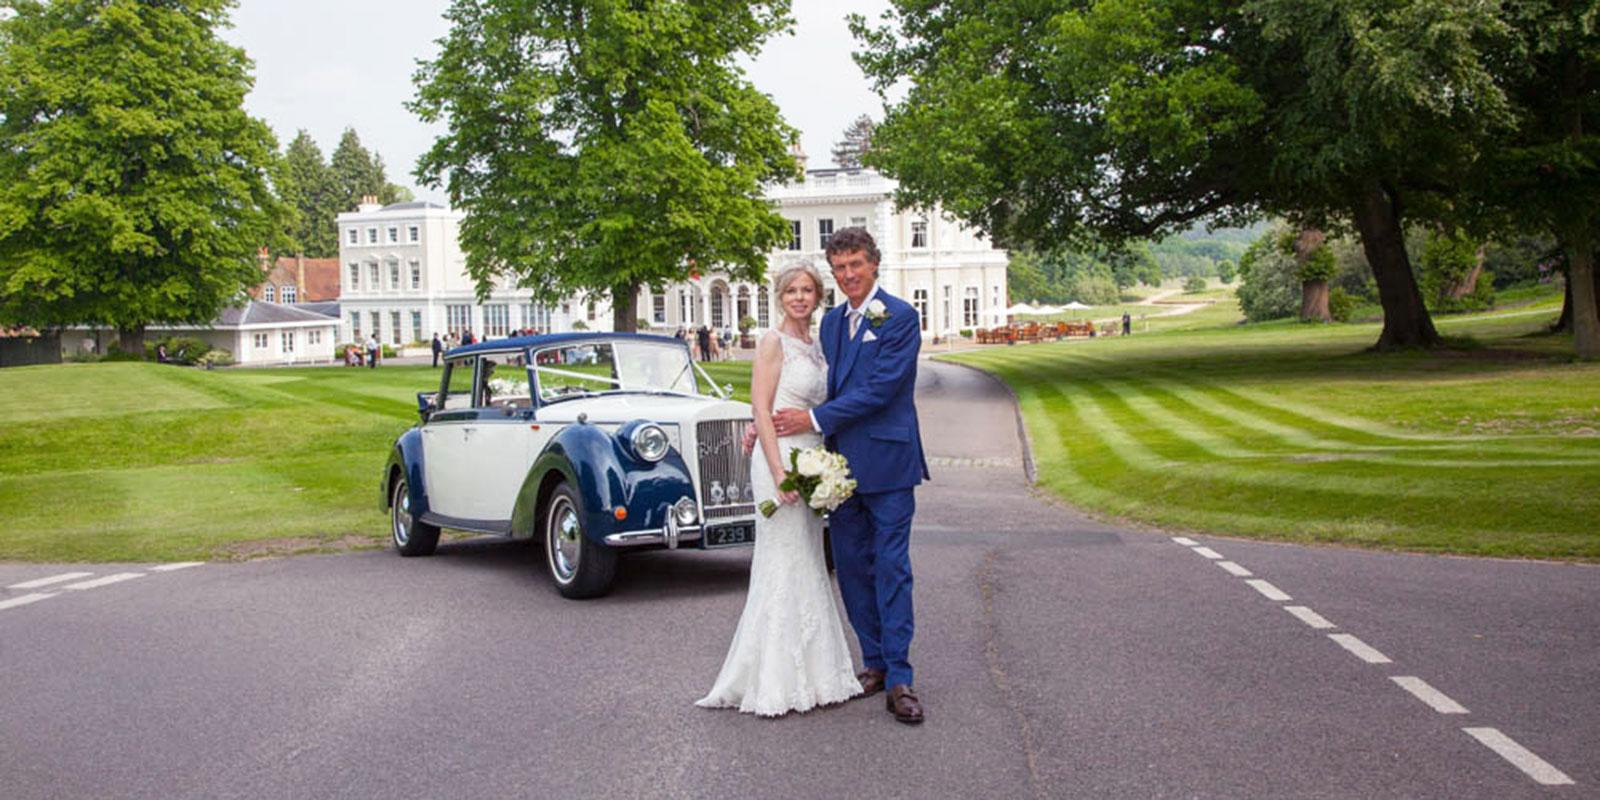 Burhill wedding couple on driveway with car